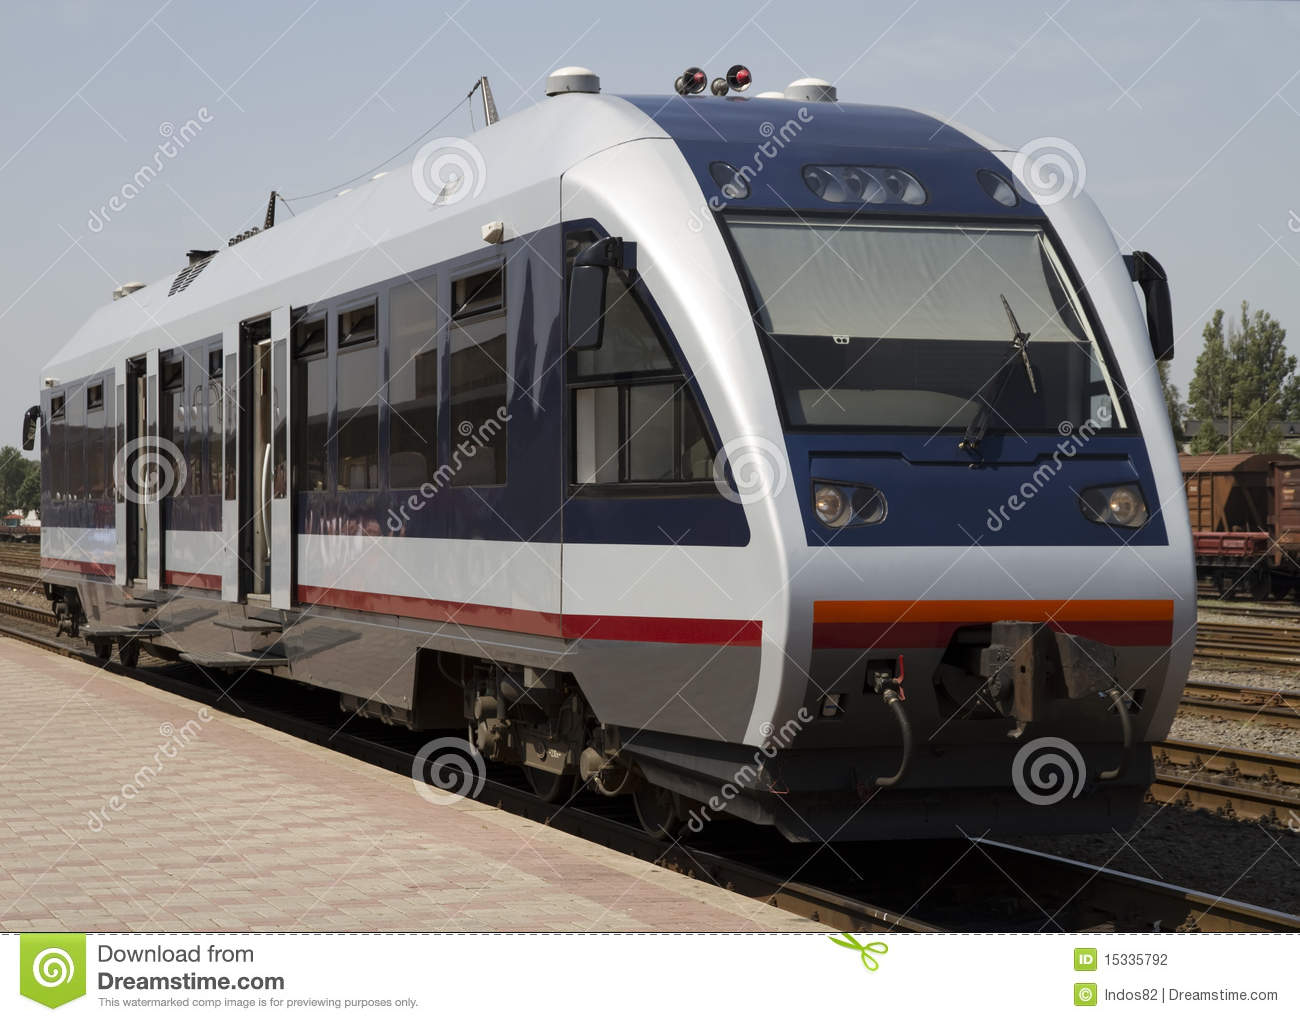 Train bus stock photo. Image of line, technology ...